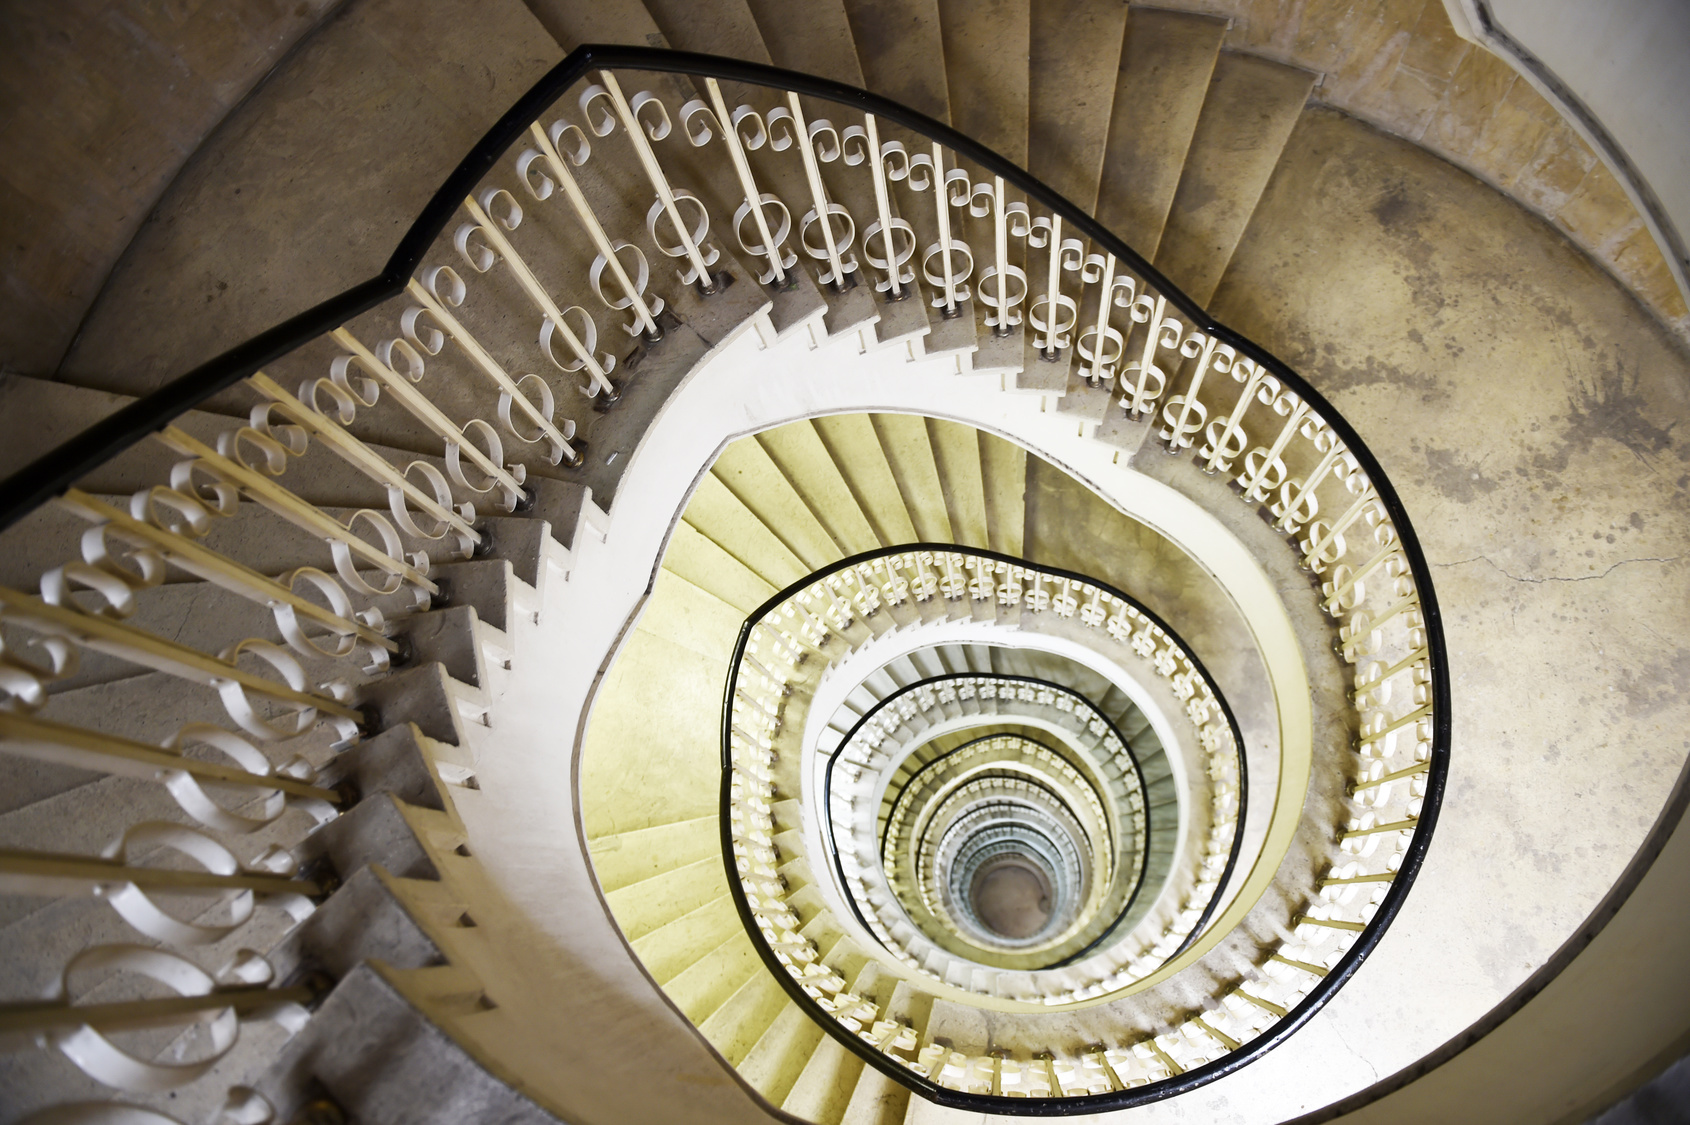 Spiral staircase in the interior of a tall building